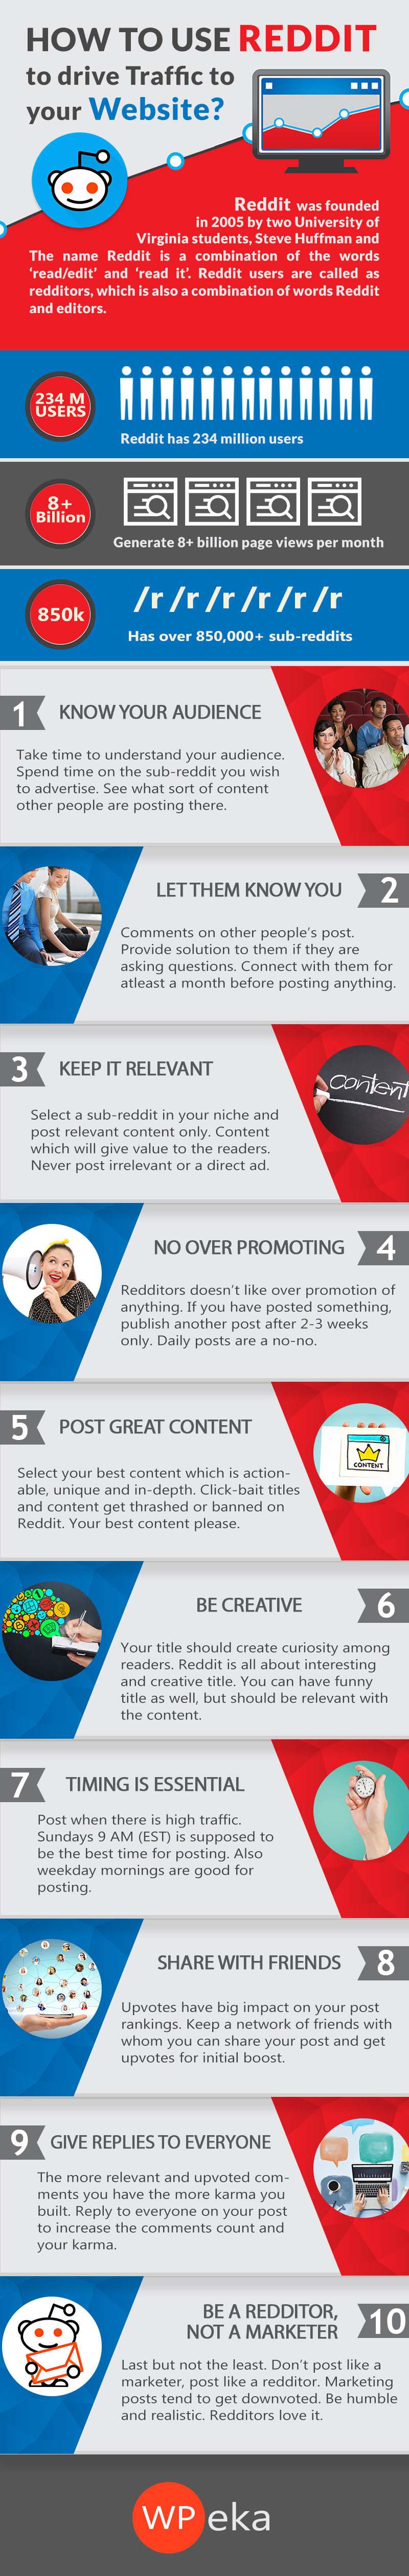 how to generate traffic from reddit infographic